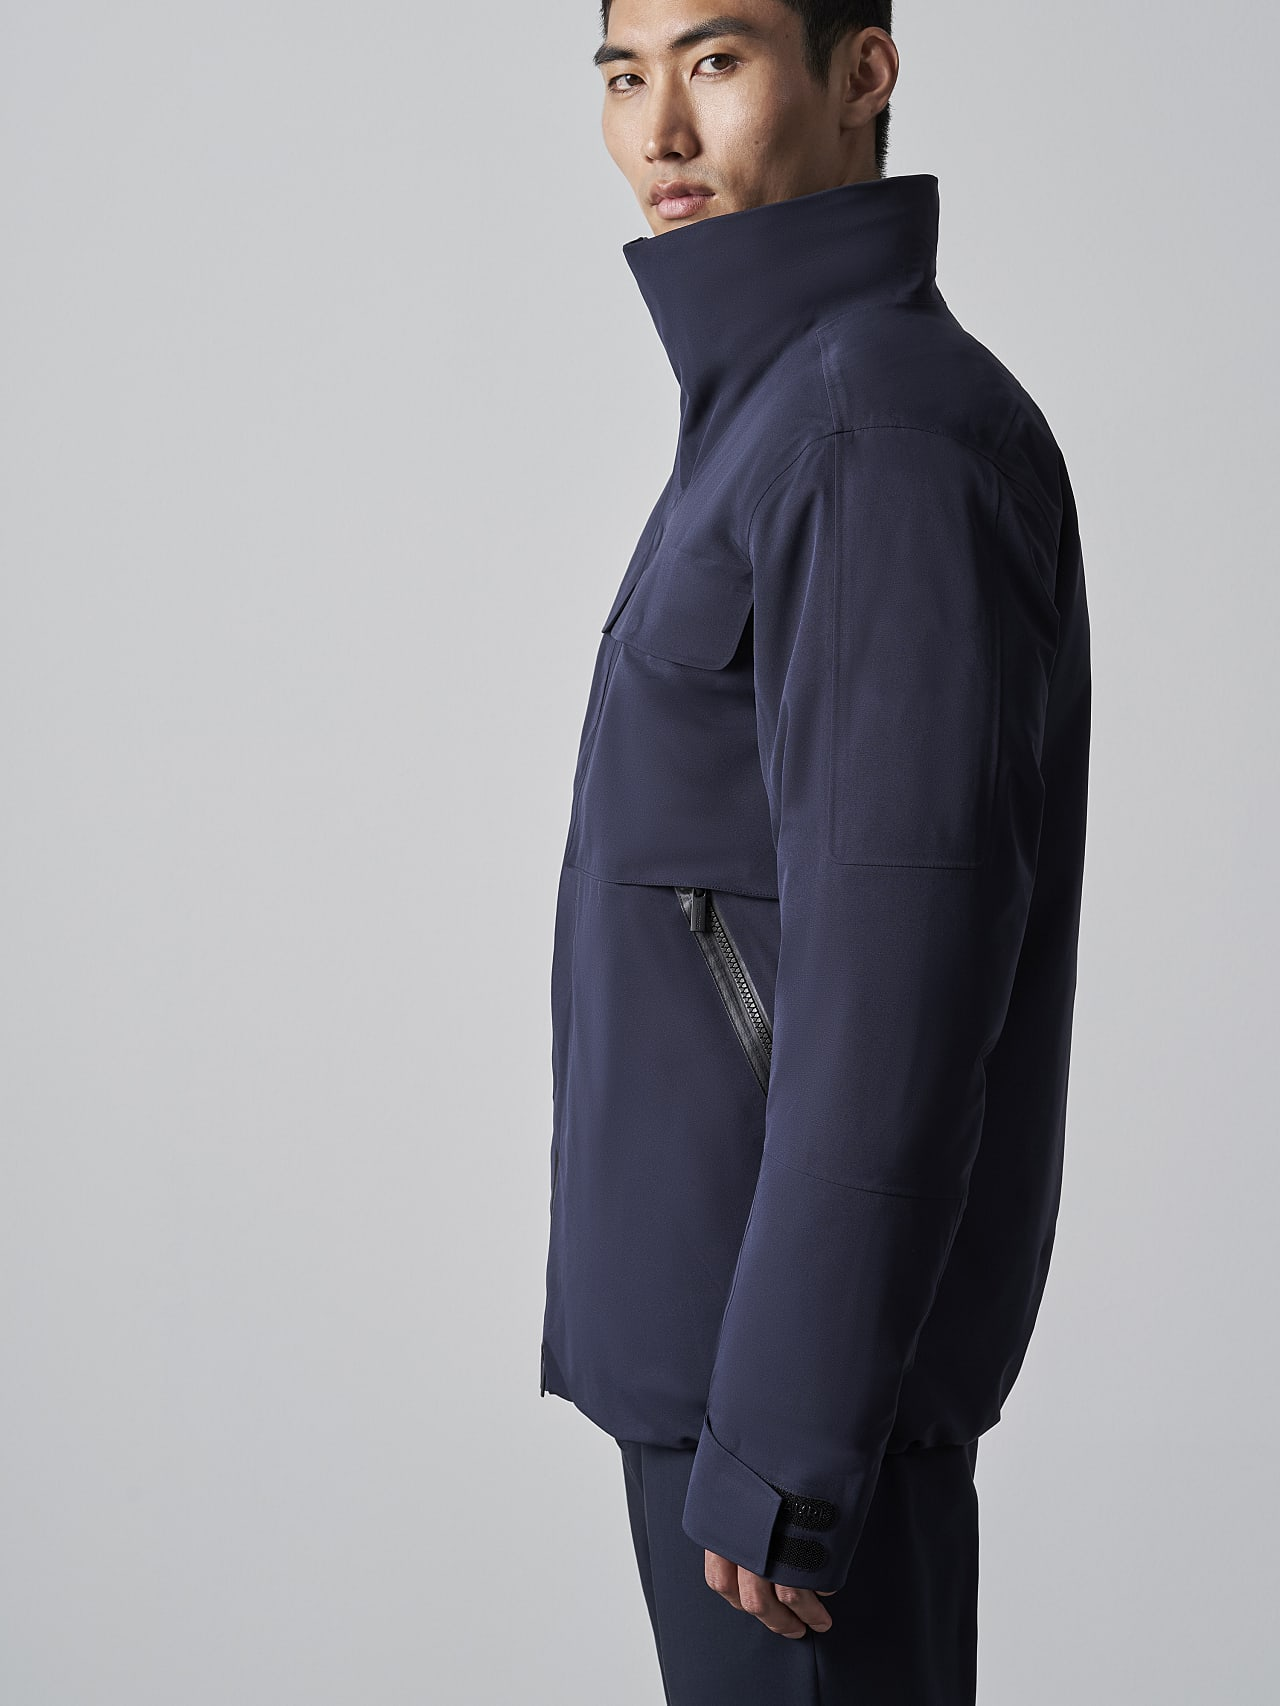 OKOVO V4.Y5.02 Packable and Waterproof Winter Jacket navy scene7.view.10.name Alpha Tauri